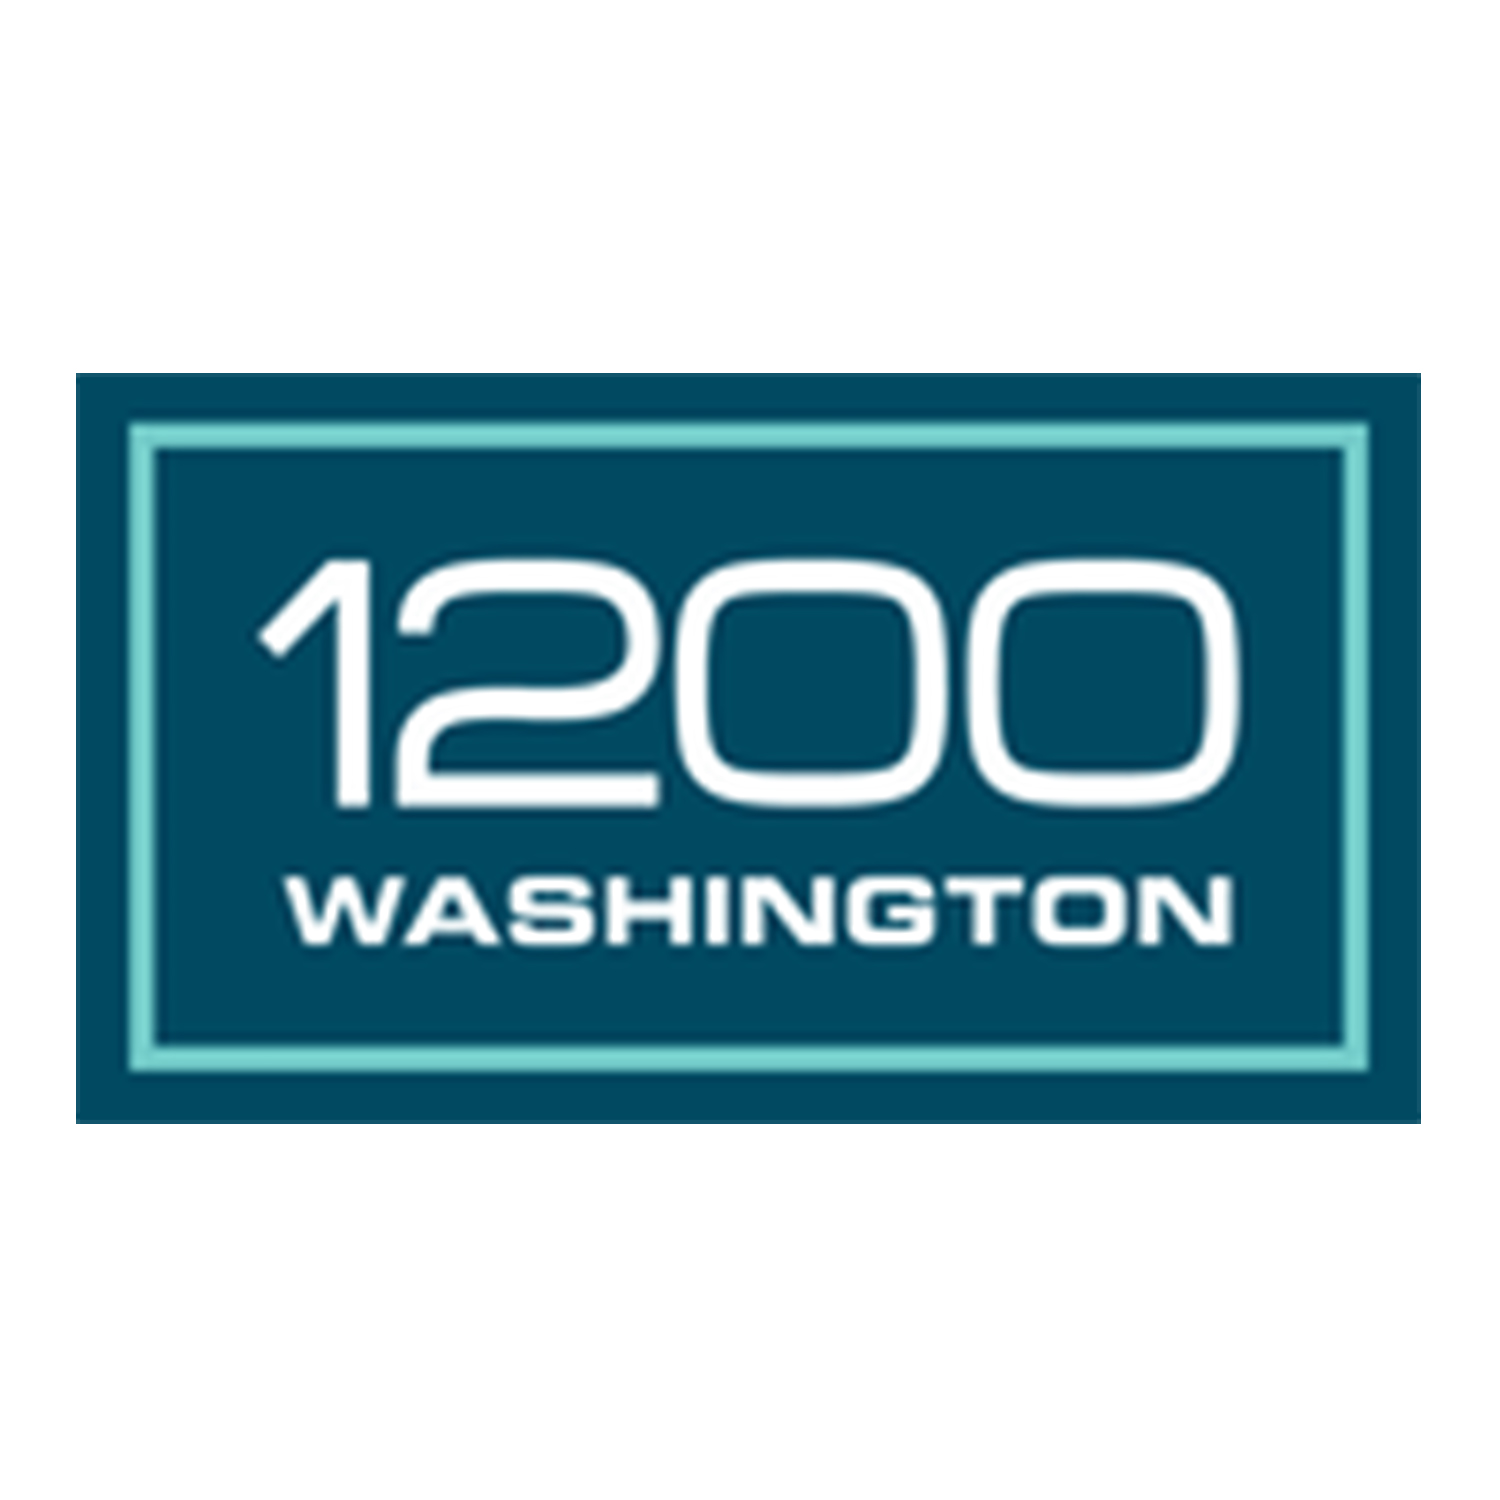 Portfolio-1200washington.jpg